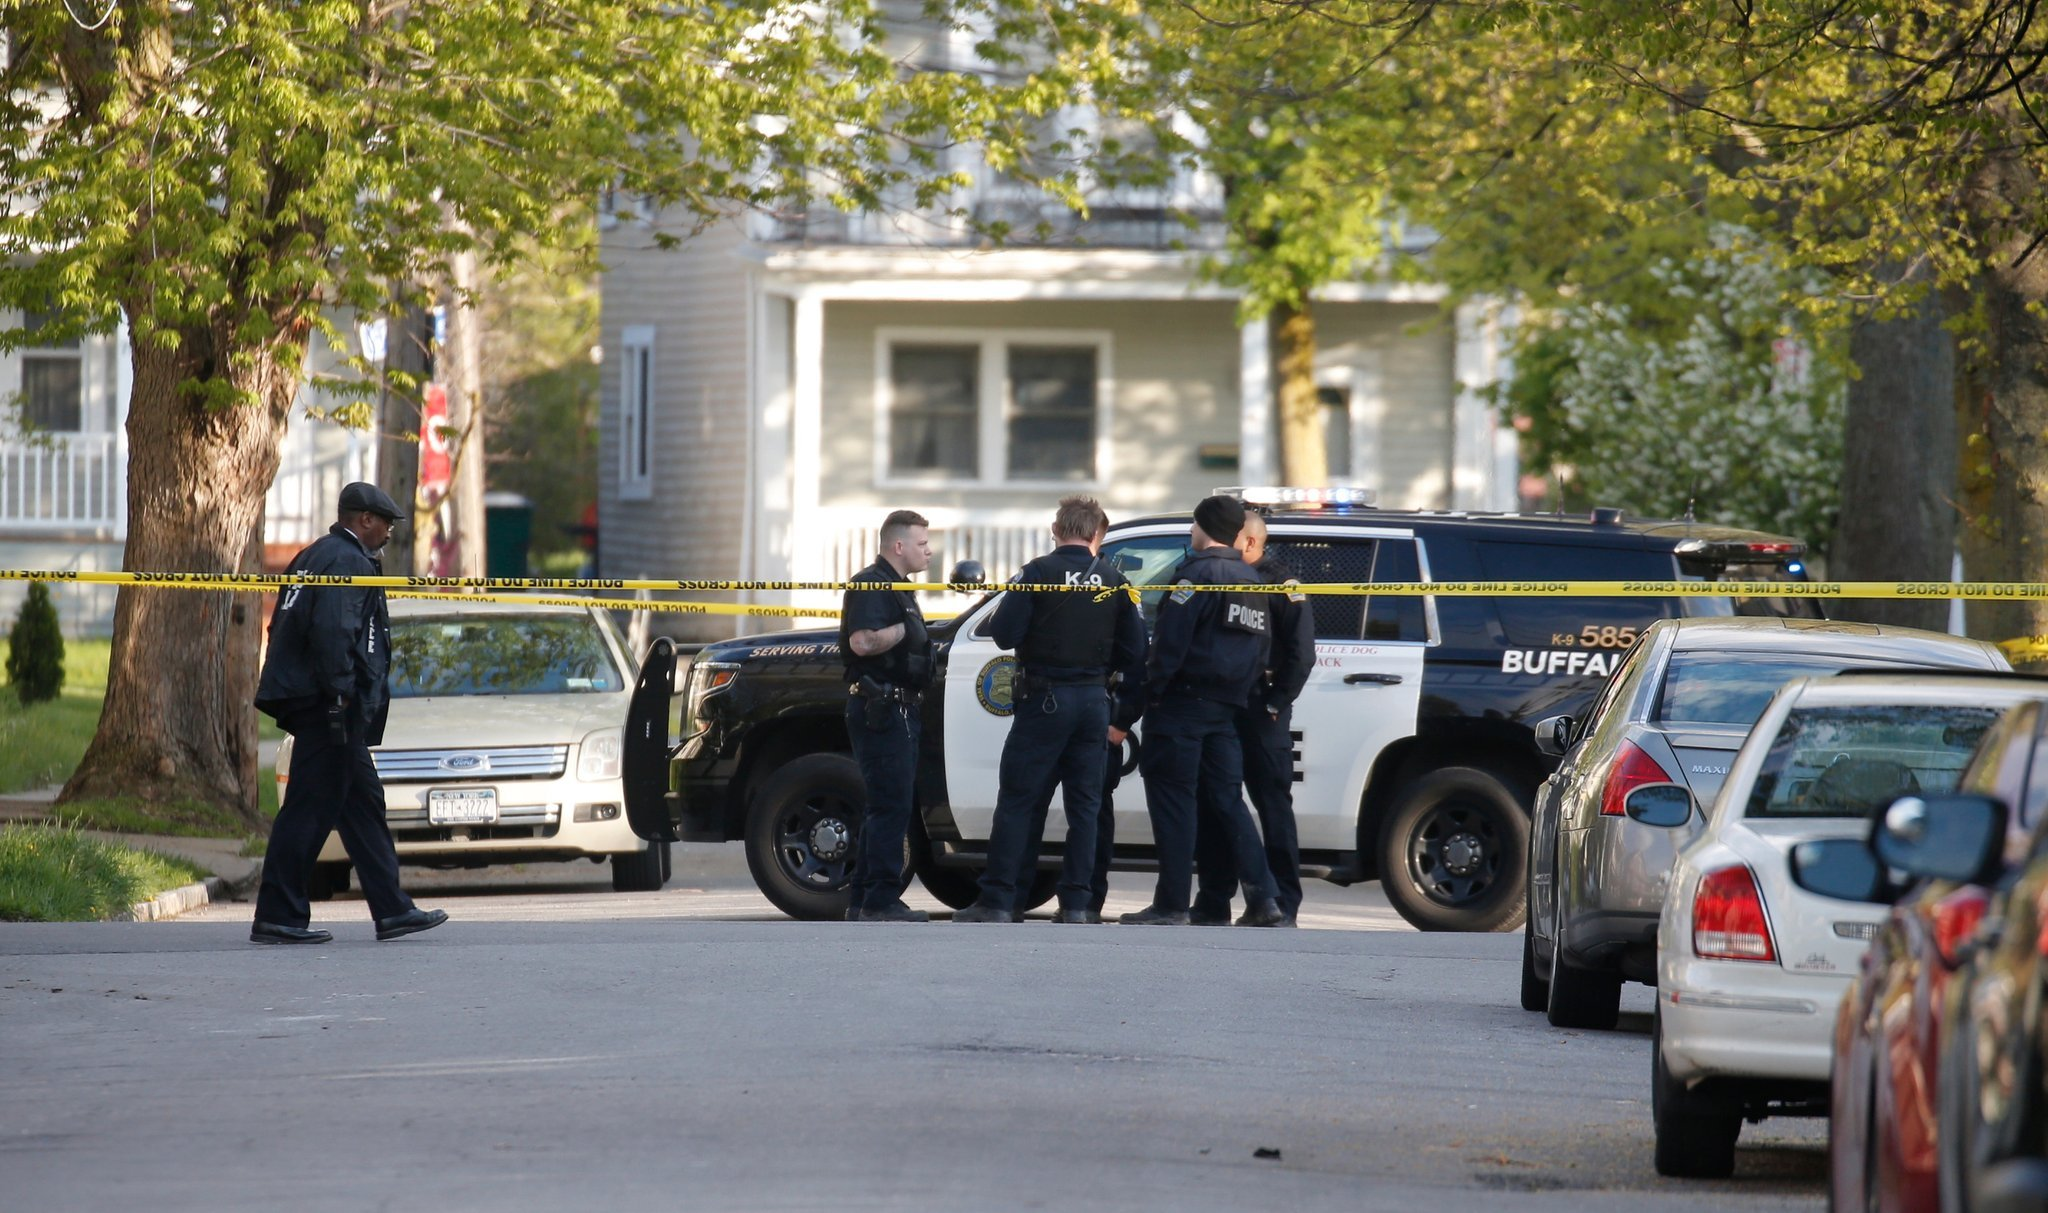 The activity at the intersection of Garfield and Hartman where a Buffalo Police officer was shot and the suspect's white SUV remained on the lawn after a chase on Sunday, May 7, 2017. (Robert Kirkham/Buffalo News)